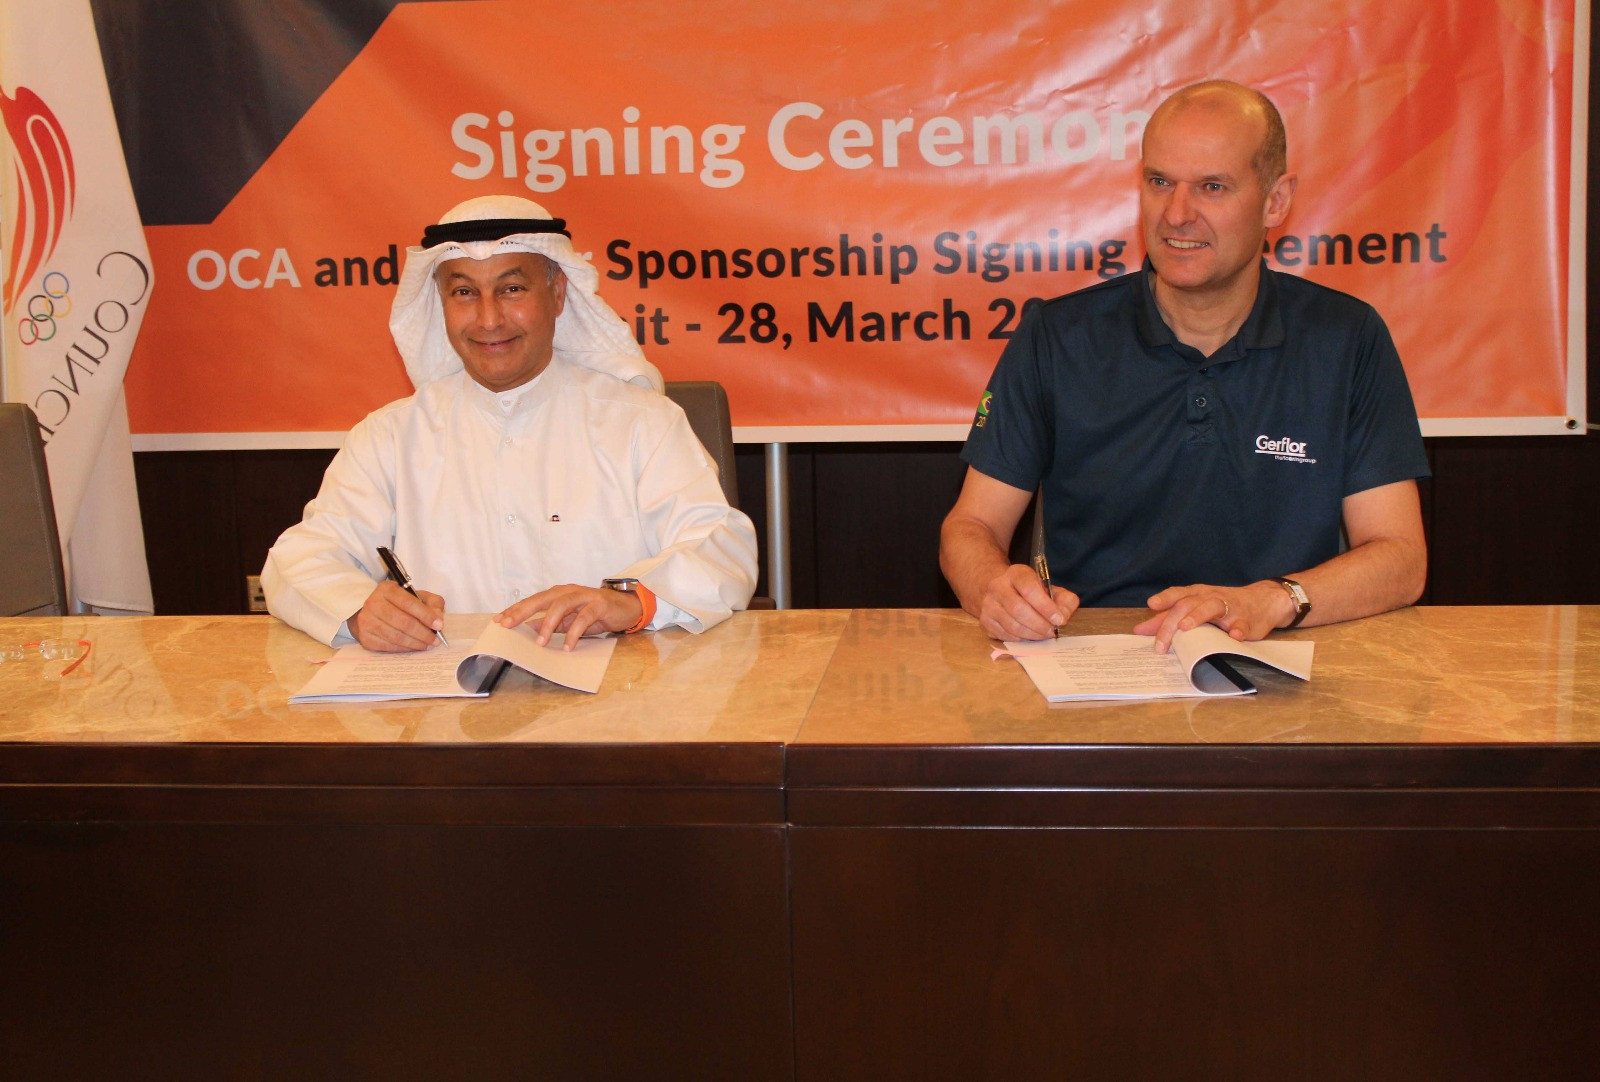 Gerflor will supply sport flooring to developing Asian nations as part of the agreement ©OCA